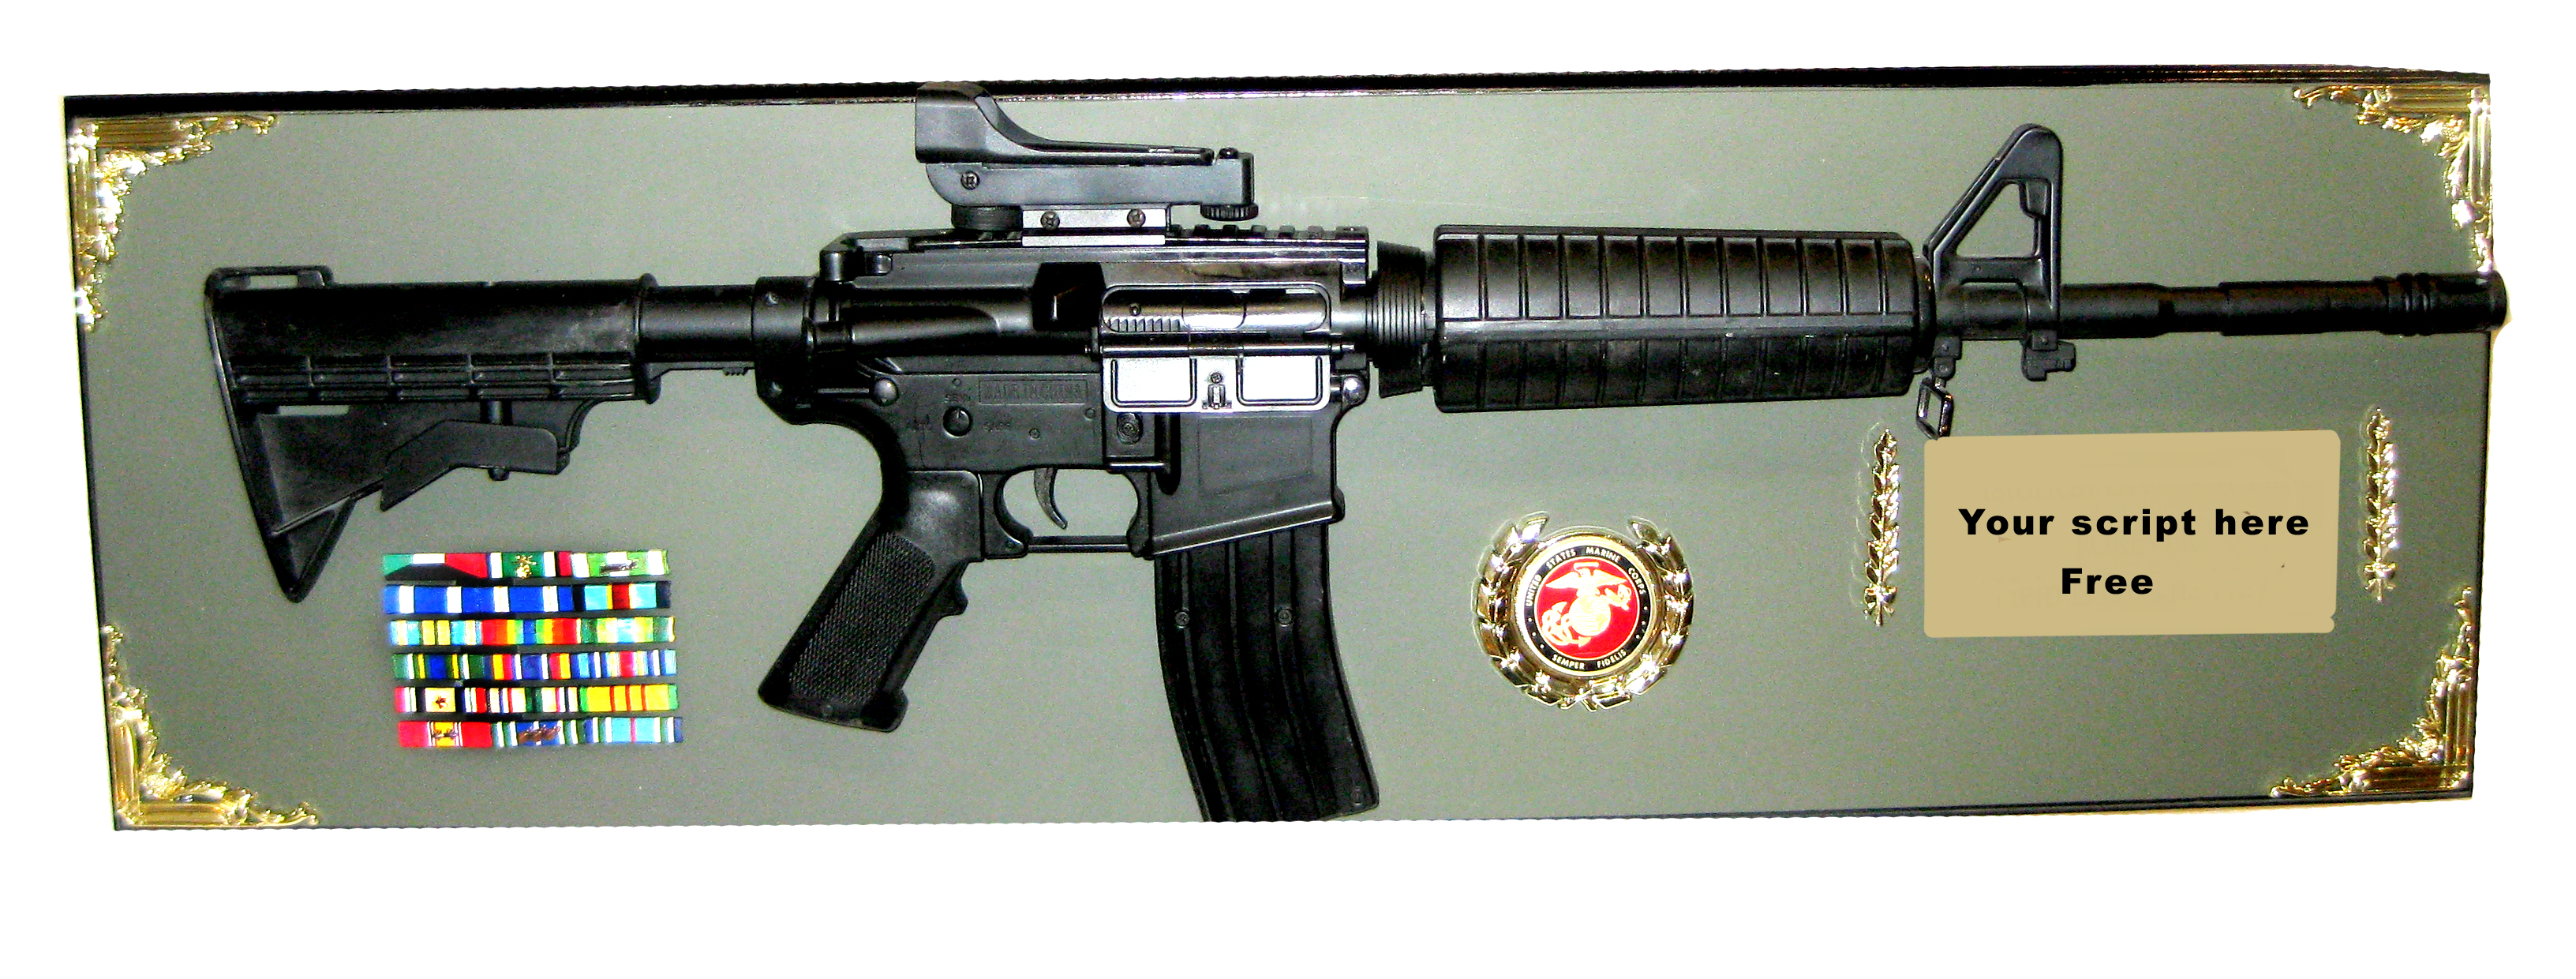 M4 rifle award full size - Click Image to Close